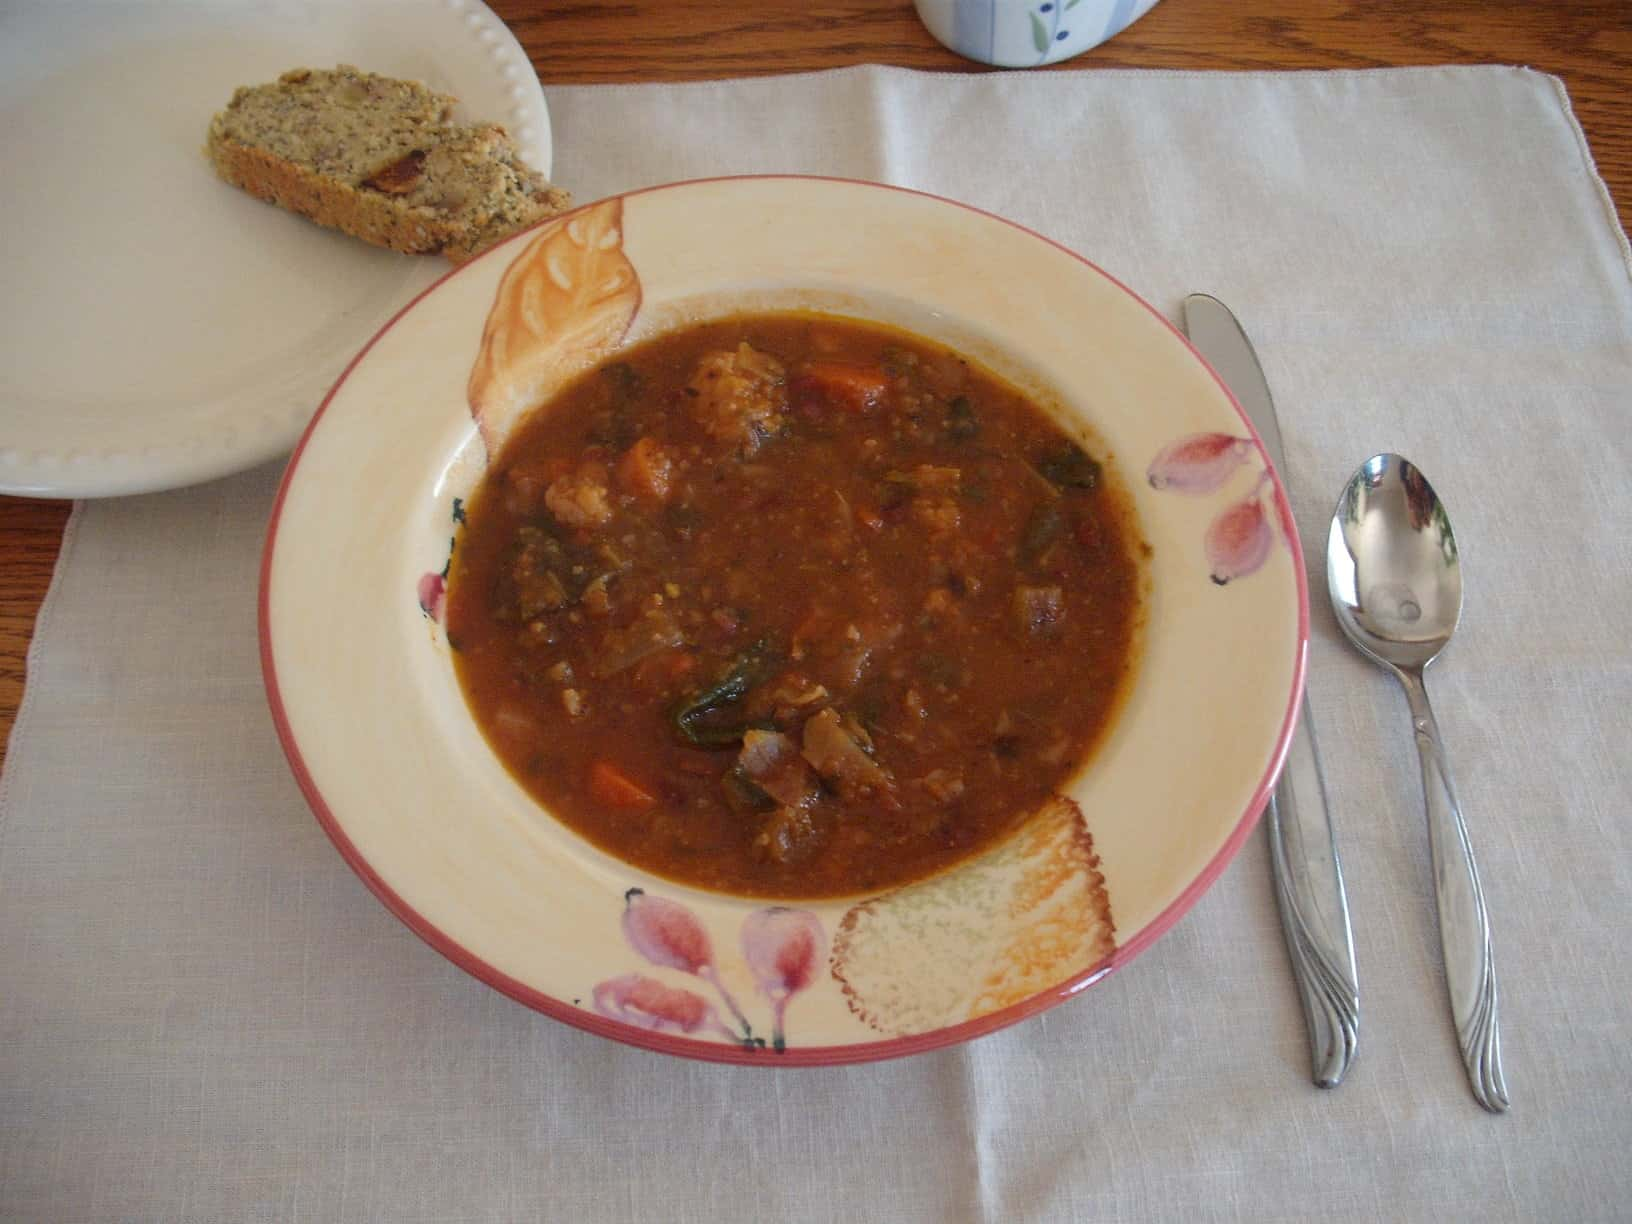 Season's Best Vegetable Soup: A By-the-Market Plan